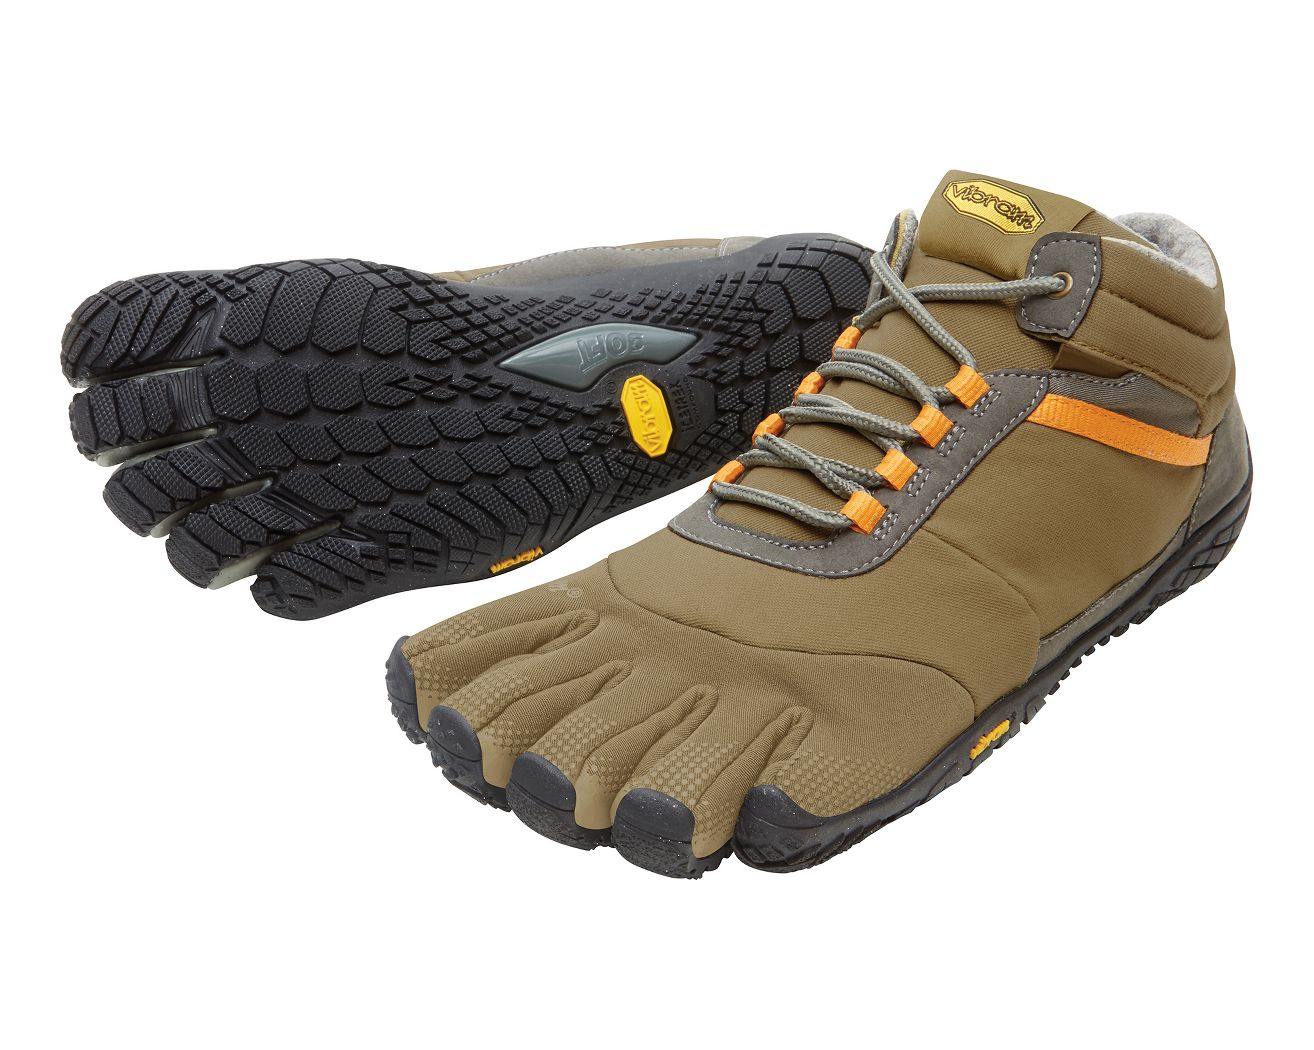 Mens Vibram FiveFingers Trek Ascent Insulated Trail Running Shoe at Road Runner Sports